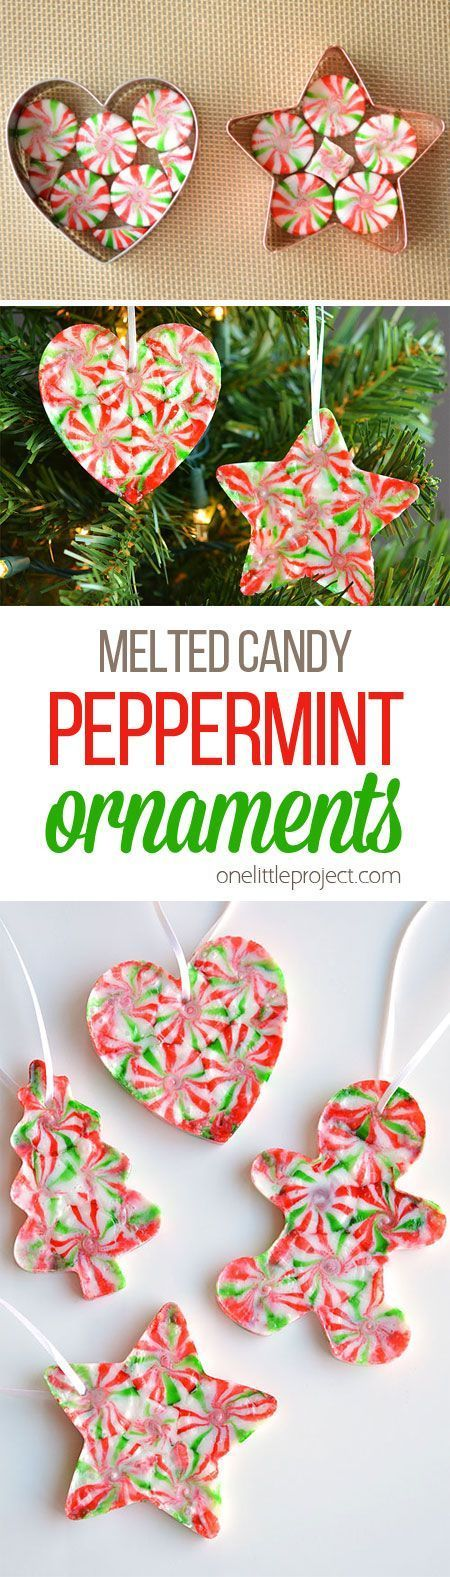 These melted peppermint candy ornaments are ADORABLE and they're super easy to make! Such a fun and inexpensive homemade Christmas ornament idea to make with the kids! (Christmas Ideas For Teachers)